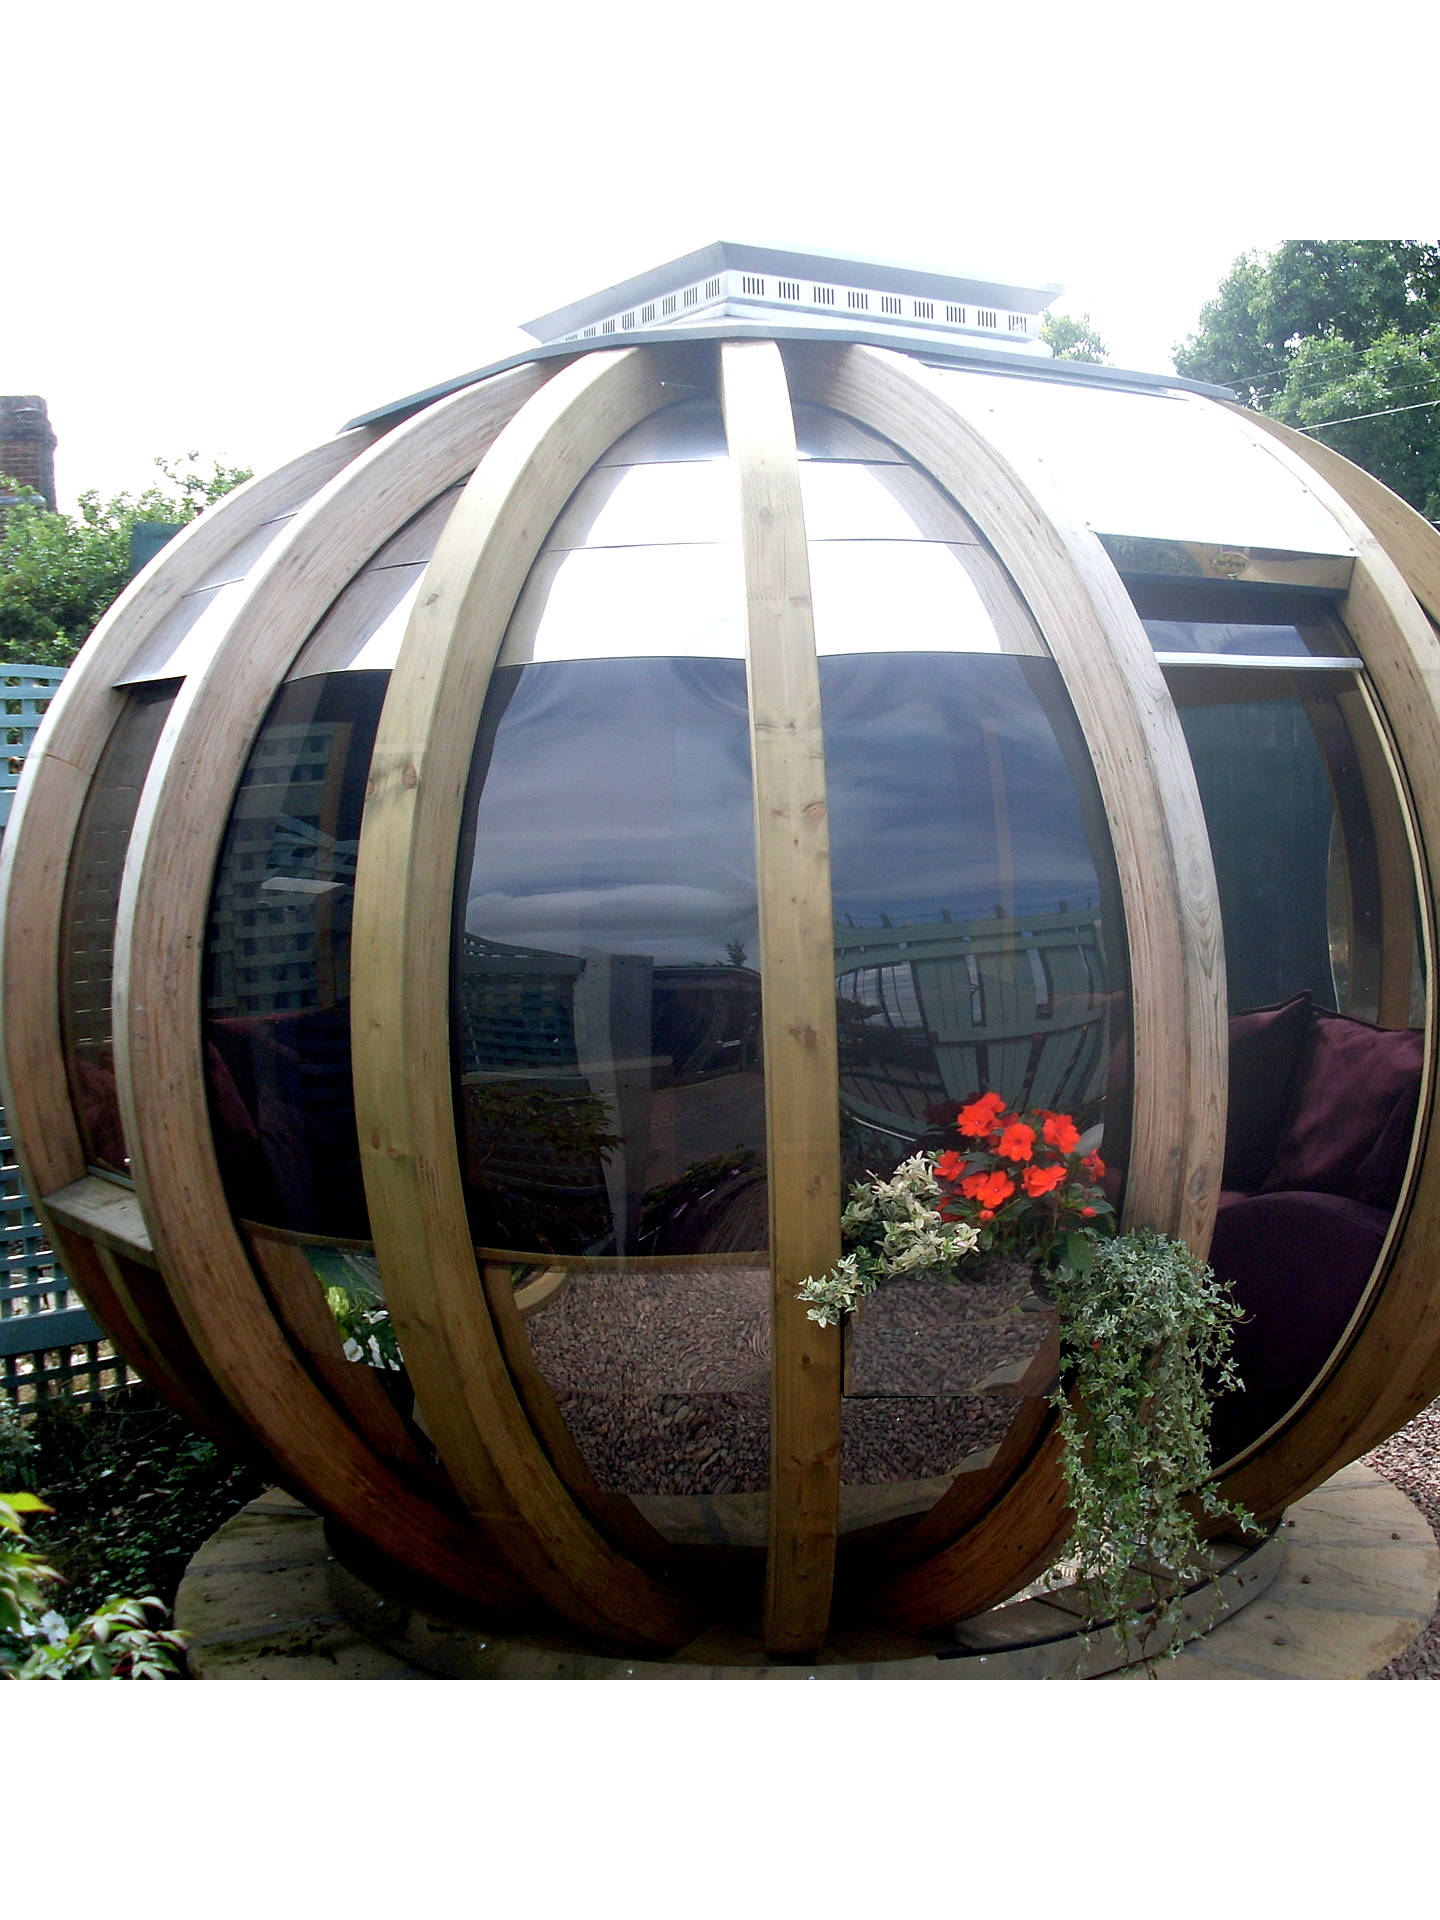 Buy Farmer's Cottage Deluxe Rotating Summer House Garden Pod Online at johnlewis.com